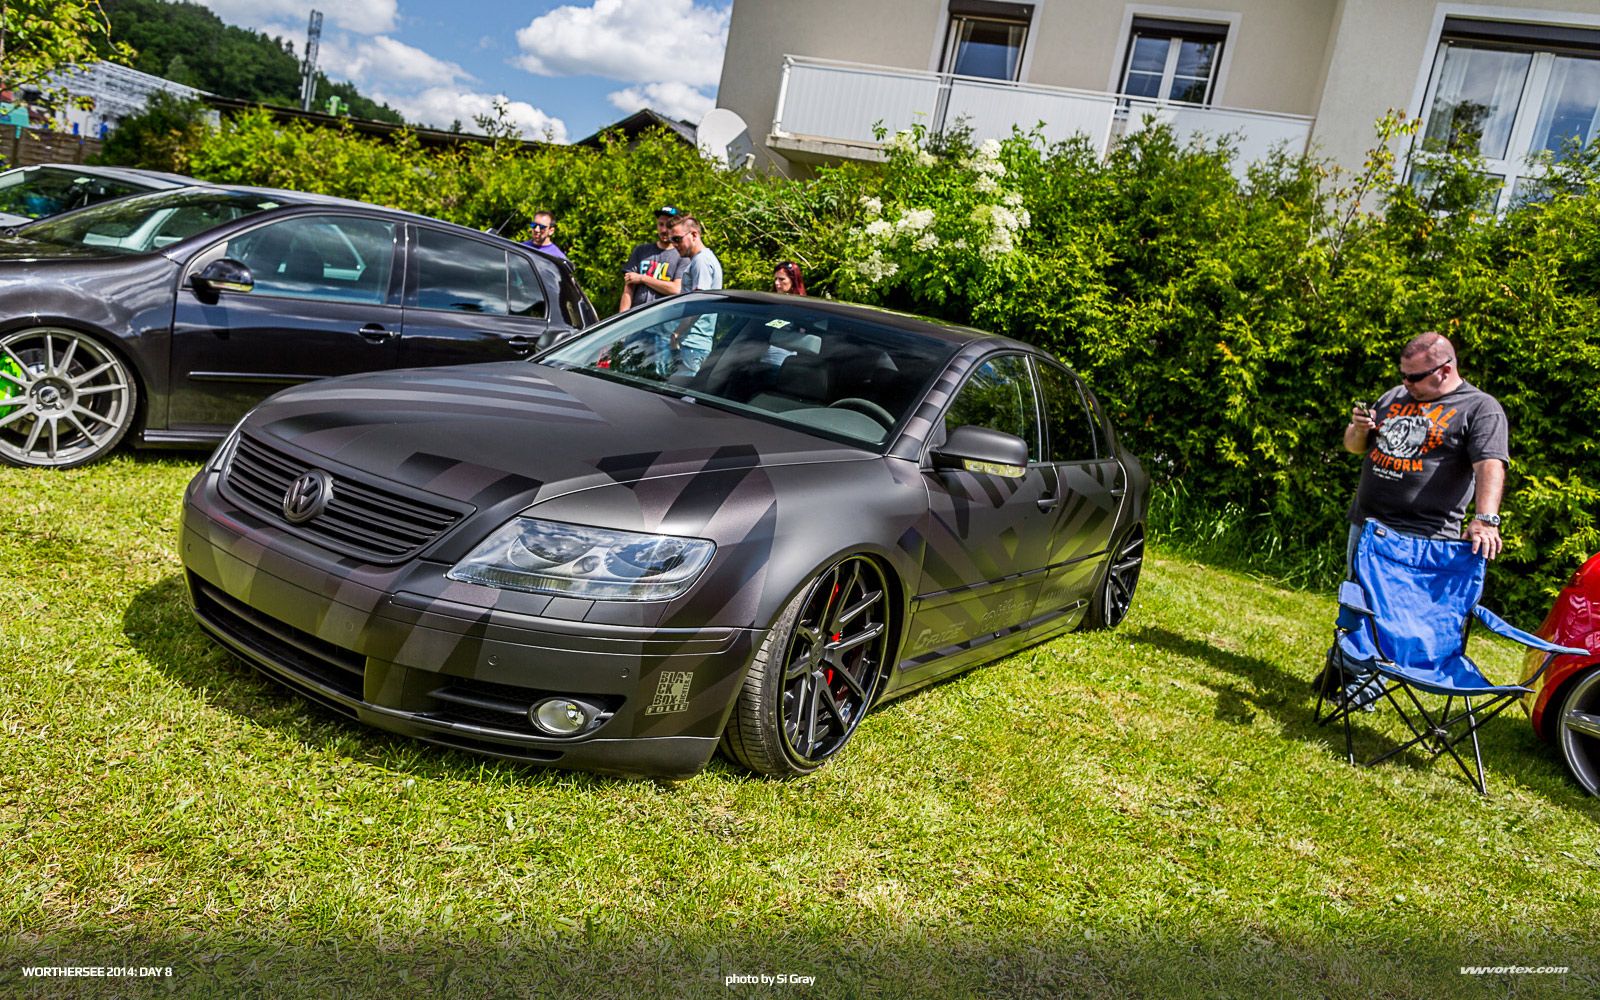 2014-Worthersee-Day-8-Si-Gray-1108